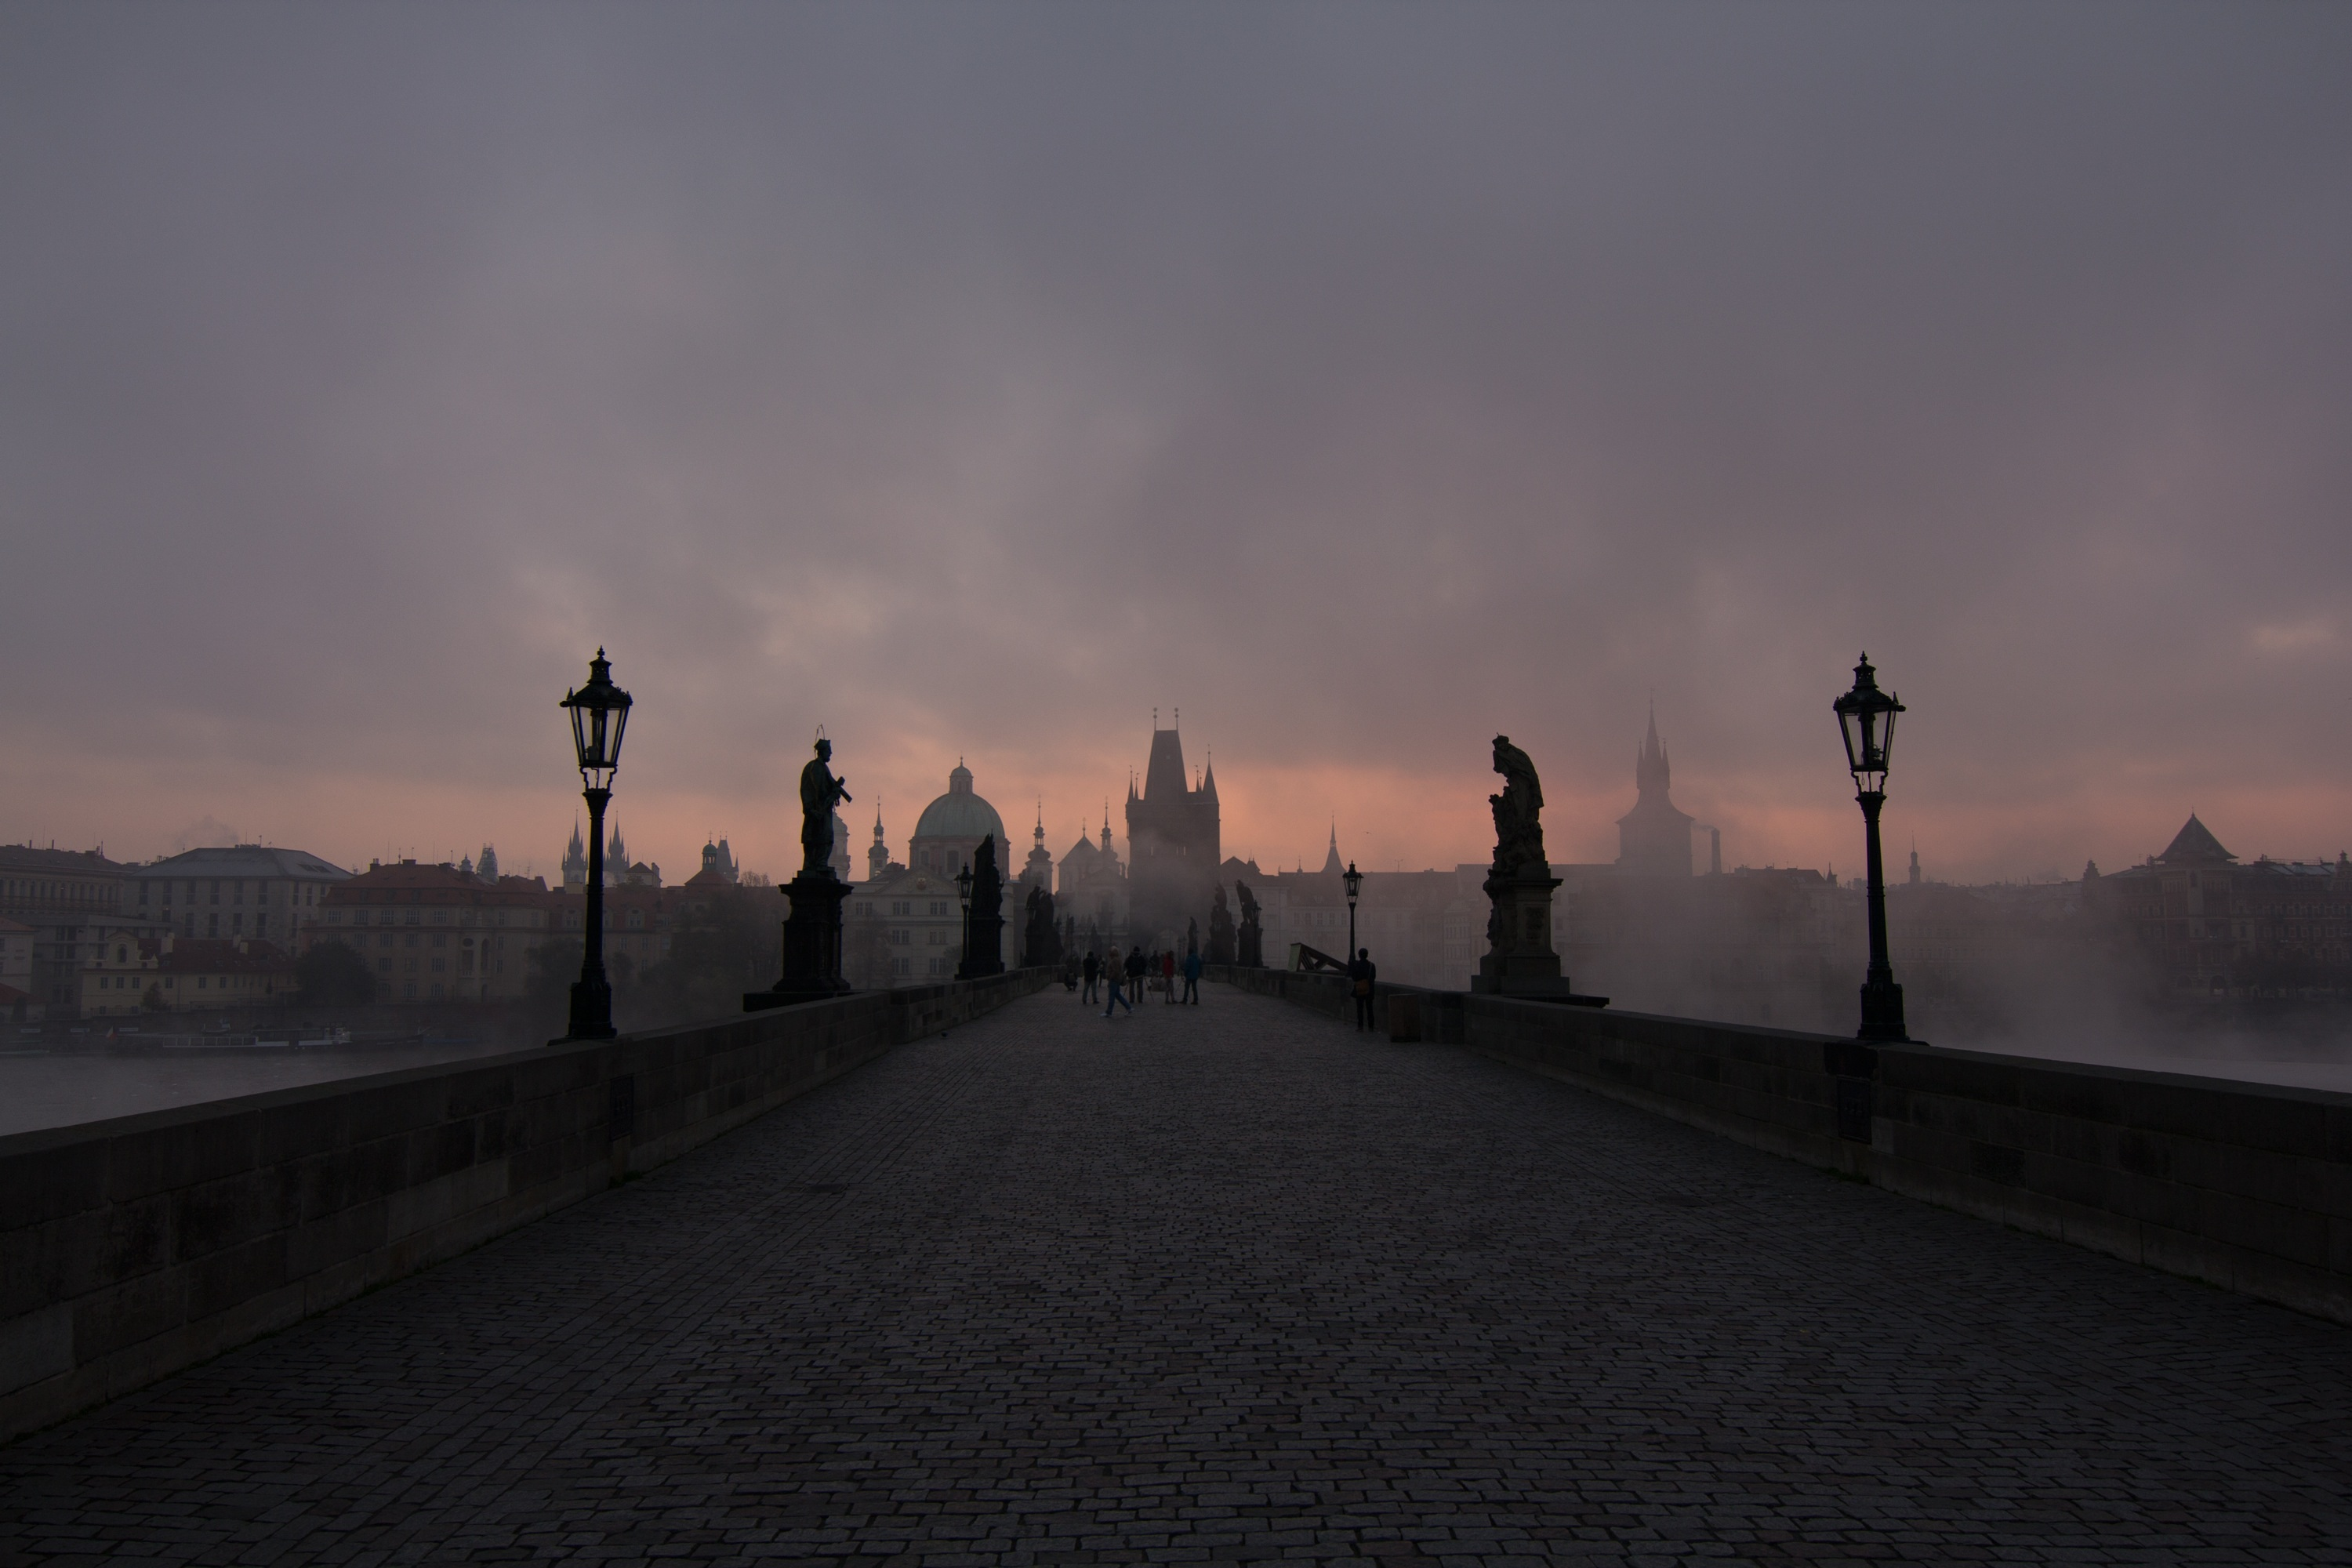 Charles bridge during low season can look like this. But usually only in the morning:)